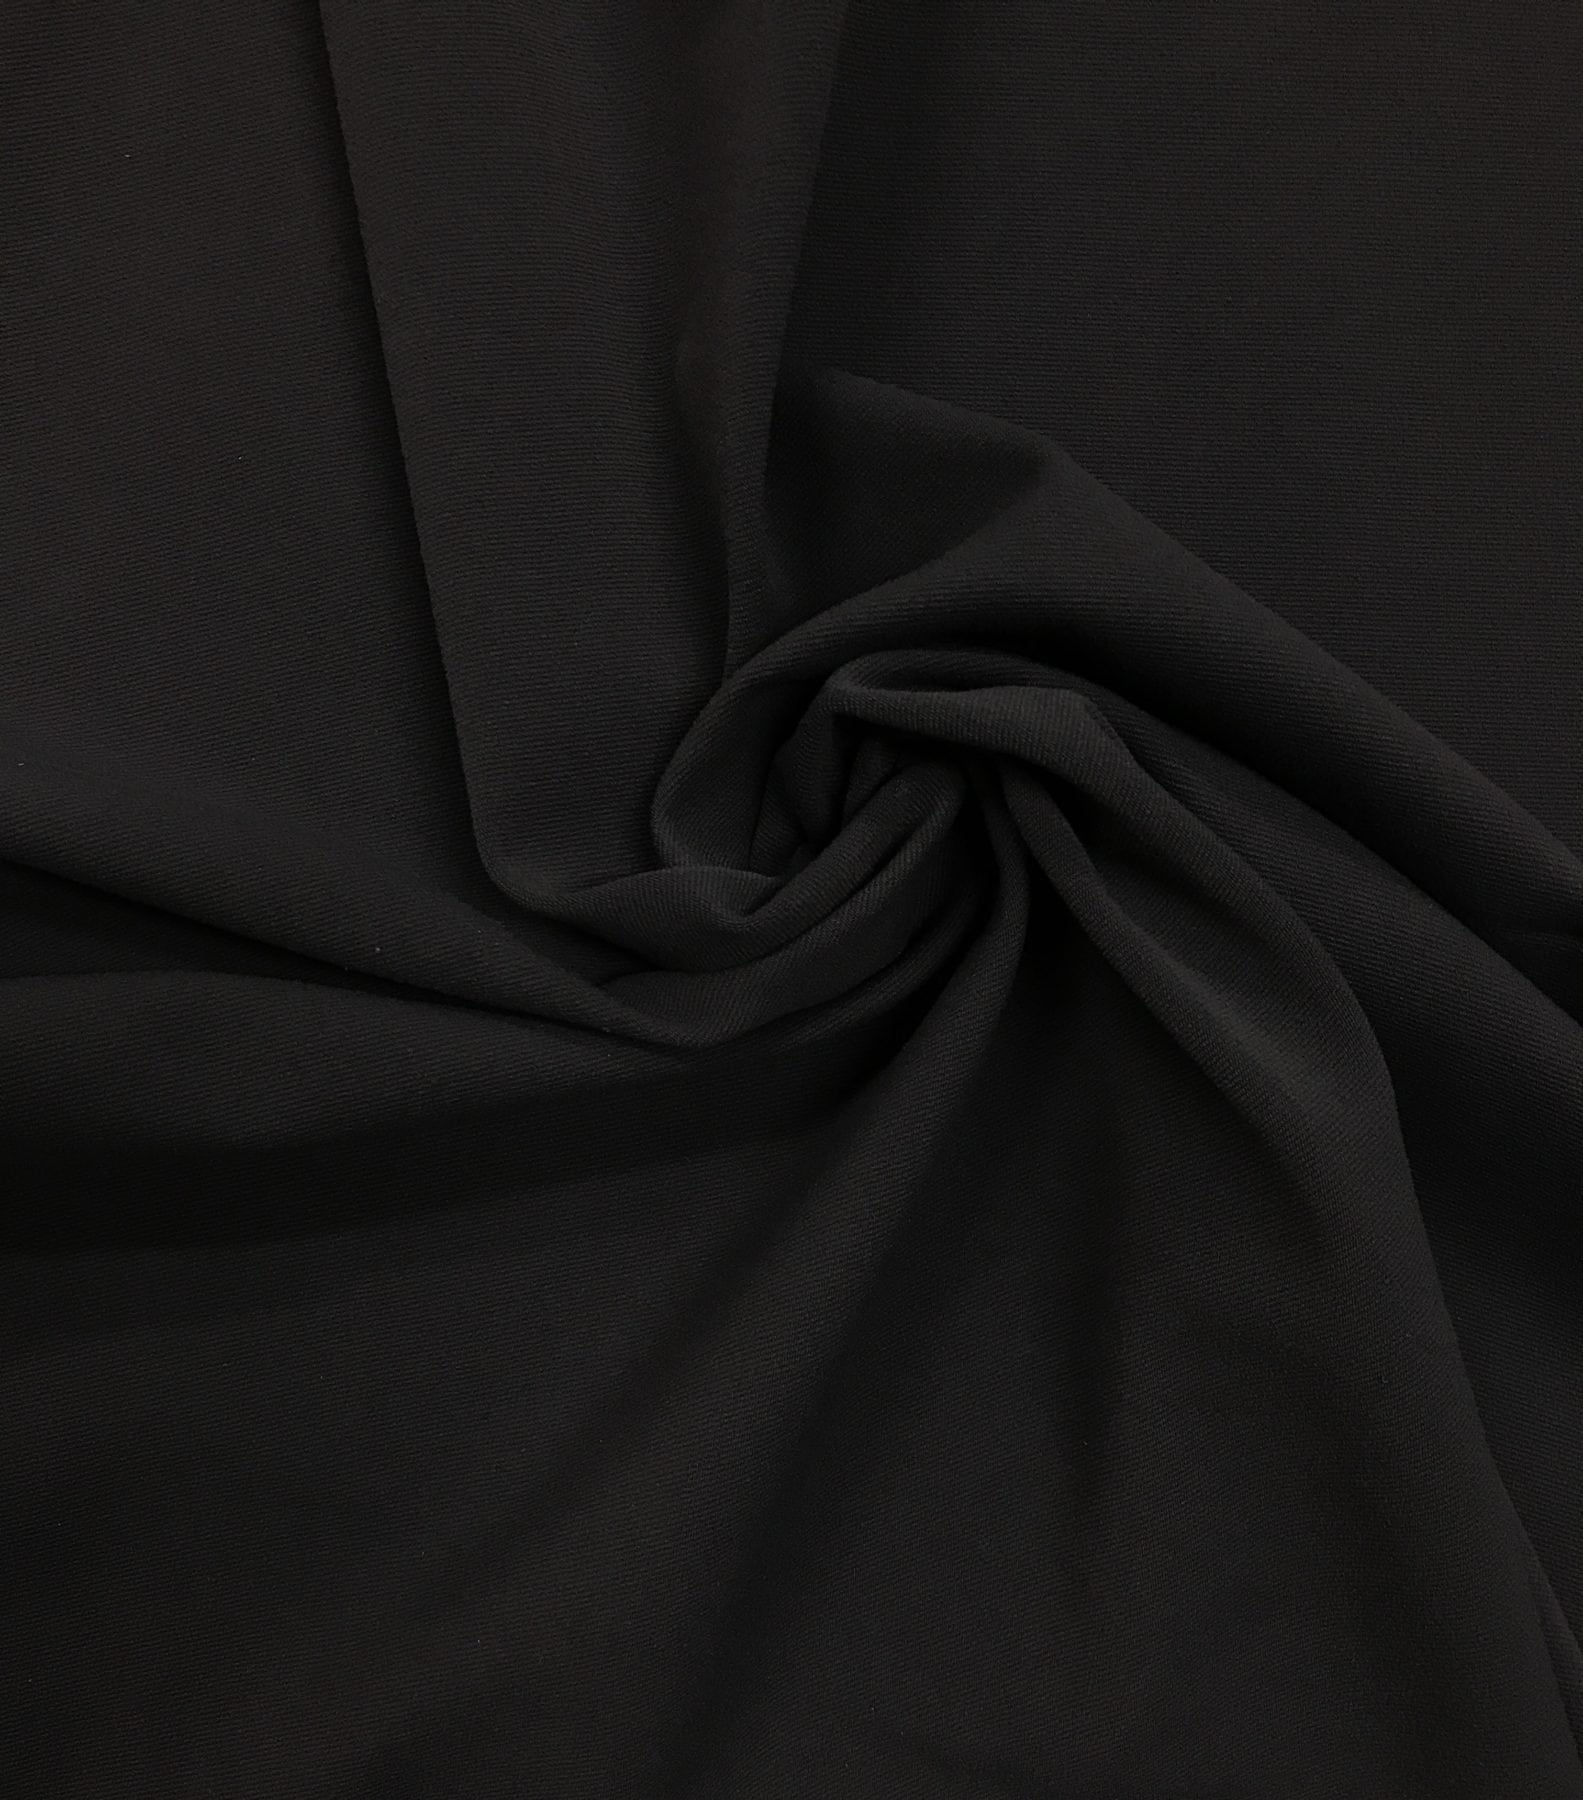 Steel Grey Moisture Wicking Supplex, Invista Supplex fabirc, moisture wicking activewear fabric, wicking supplex, moisture wicking supplex, supplex spandex